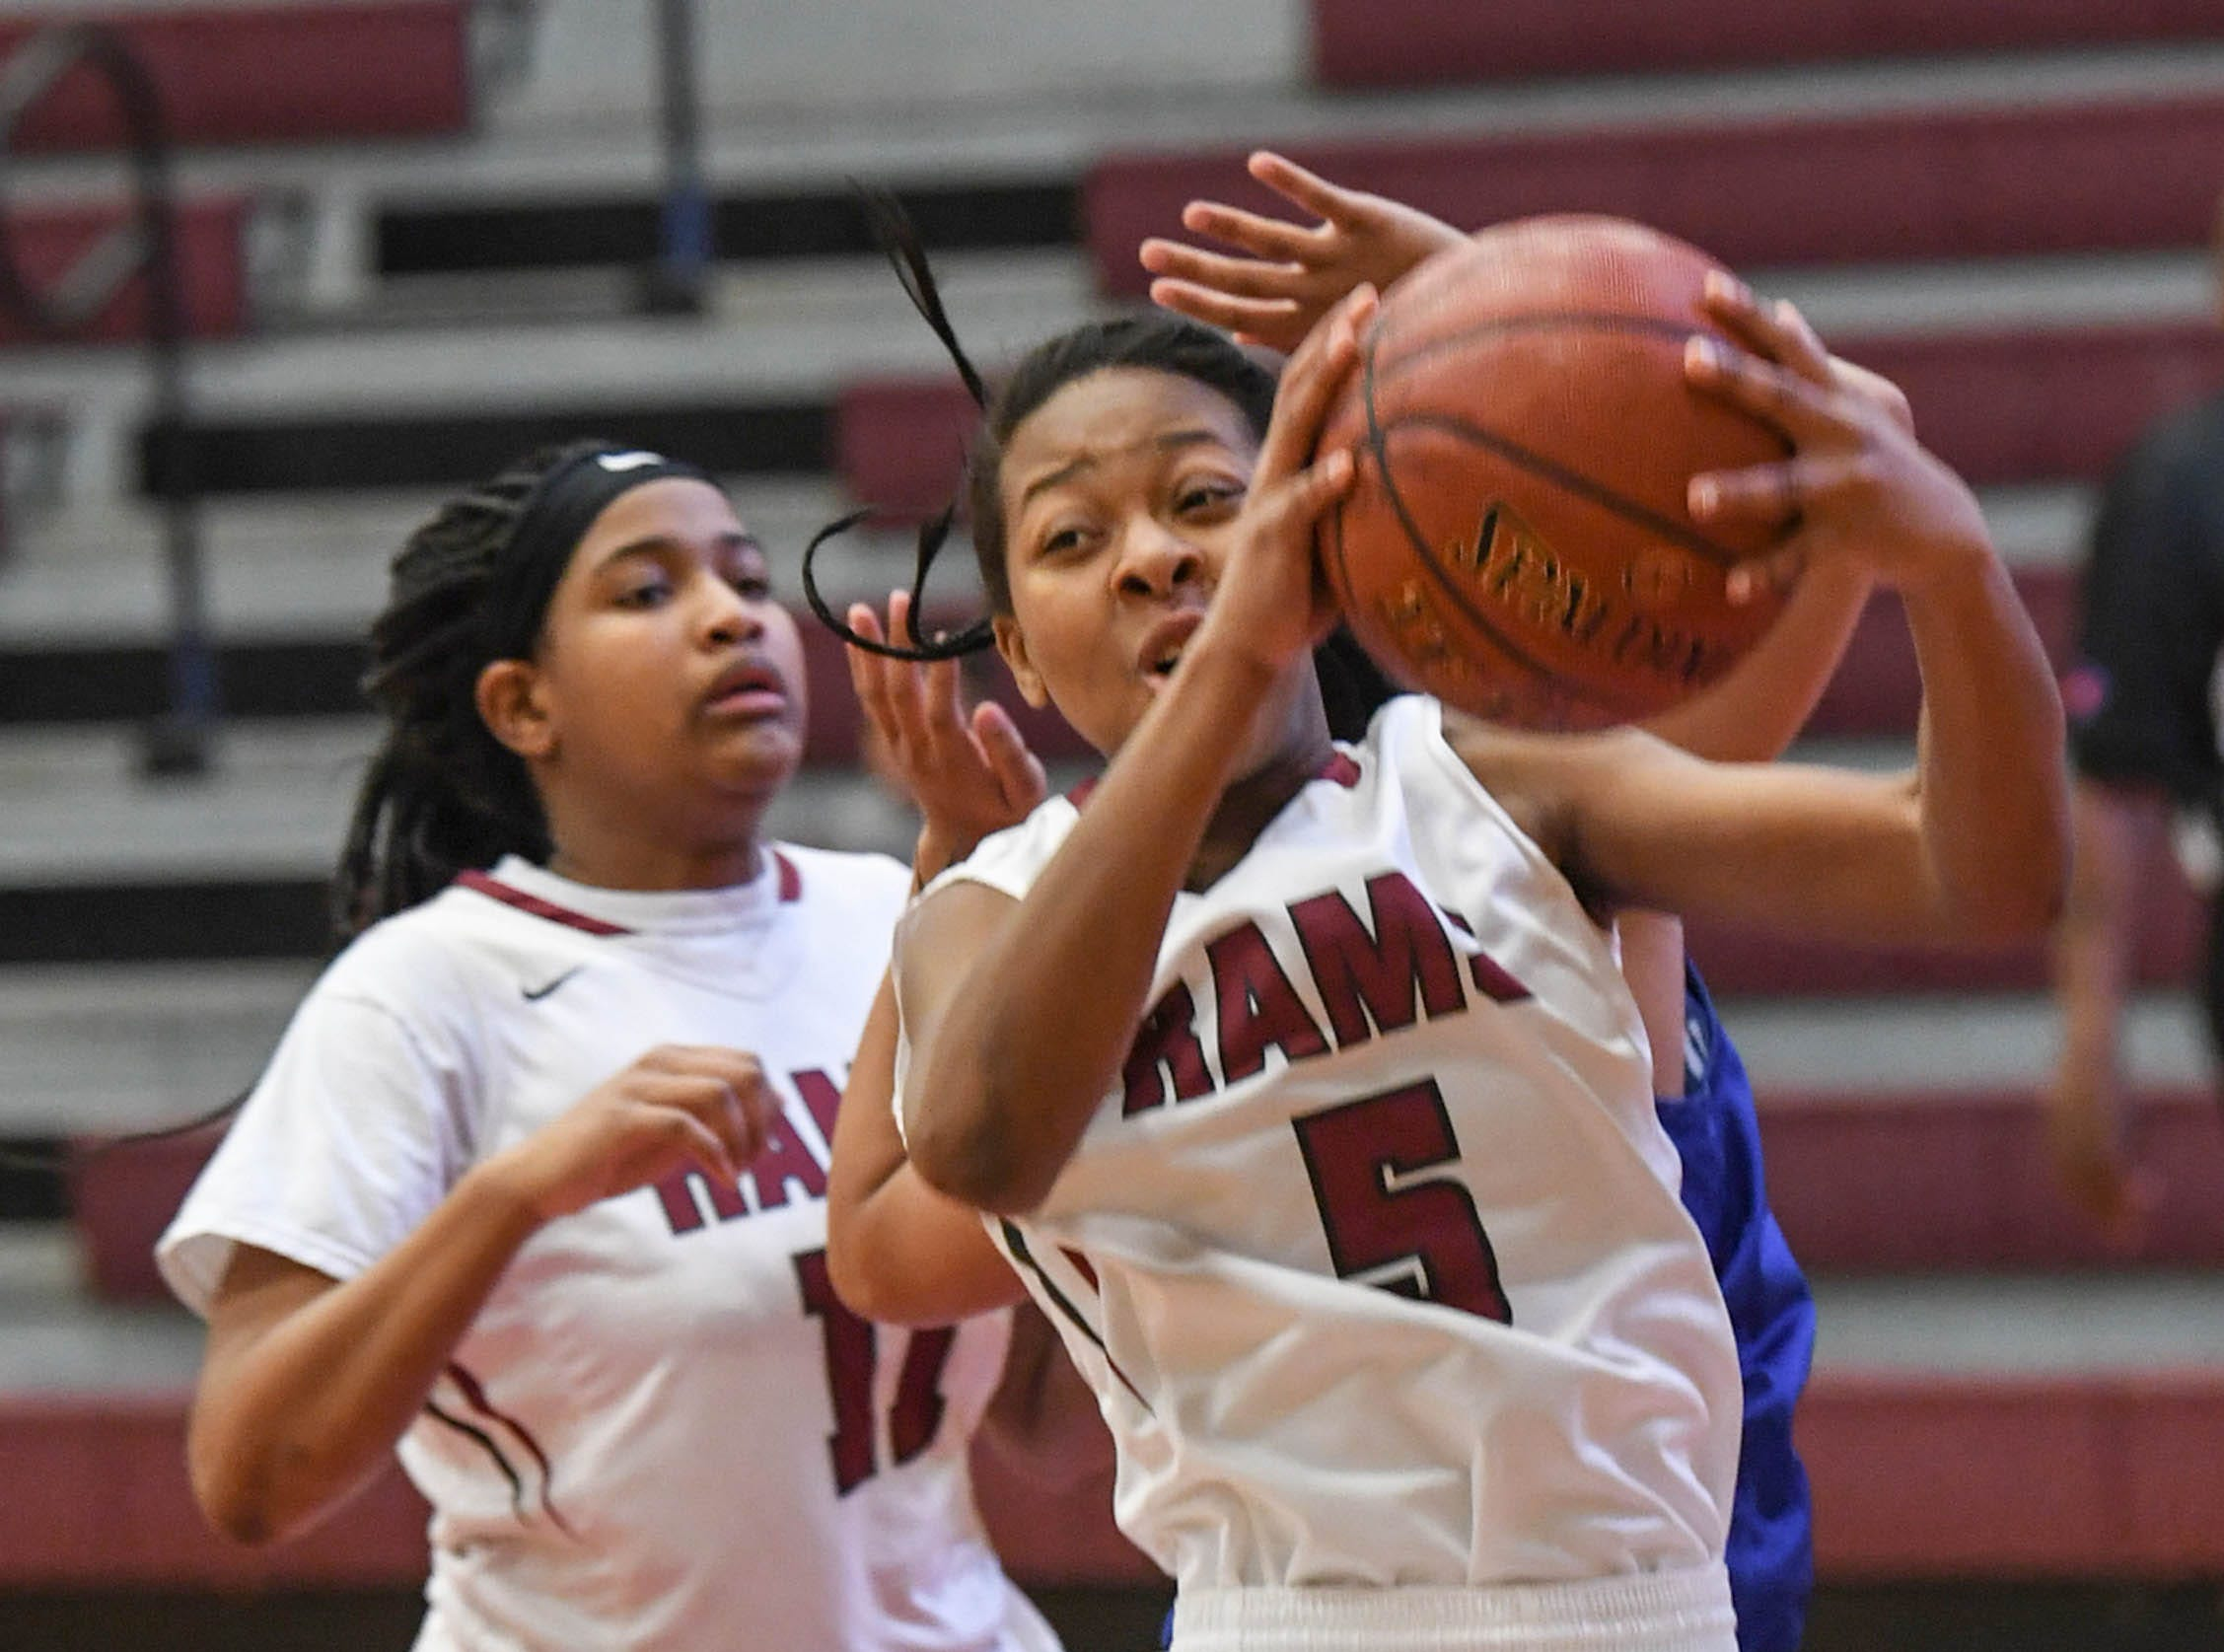 Westside senior Chelsea Adger(5) rebounds during the first quarter at Westside High School in Anderson on Tuesday.